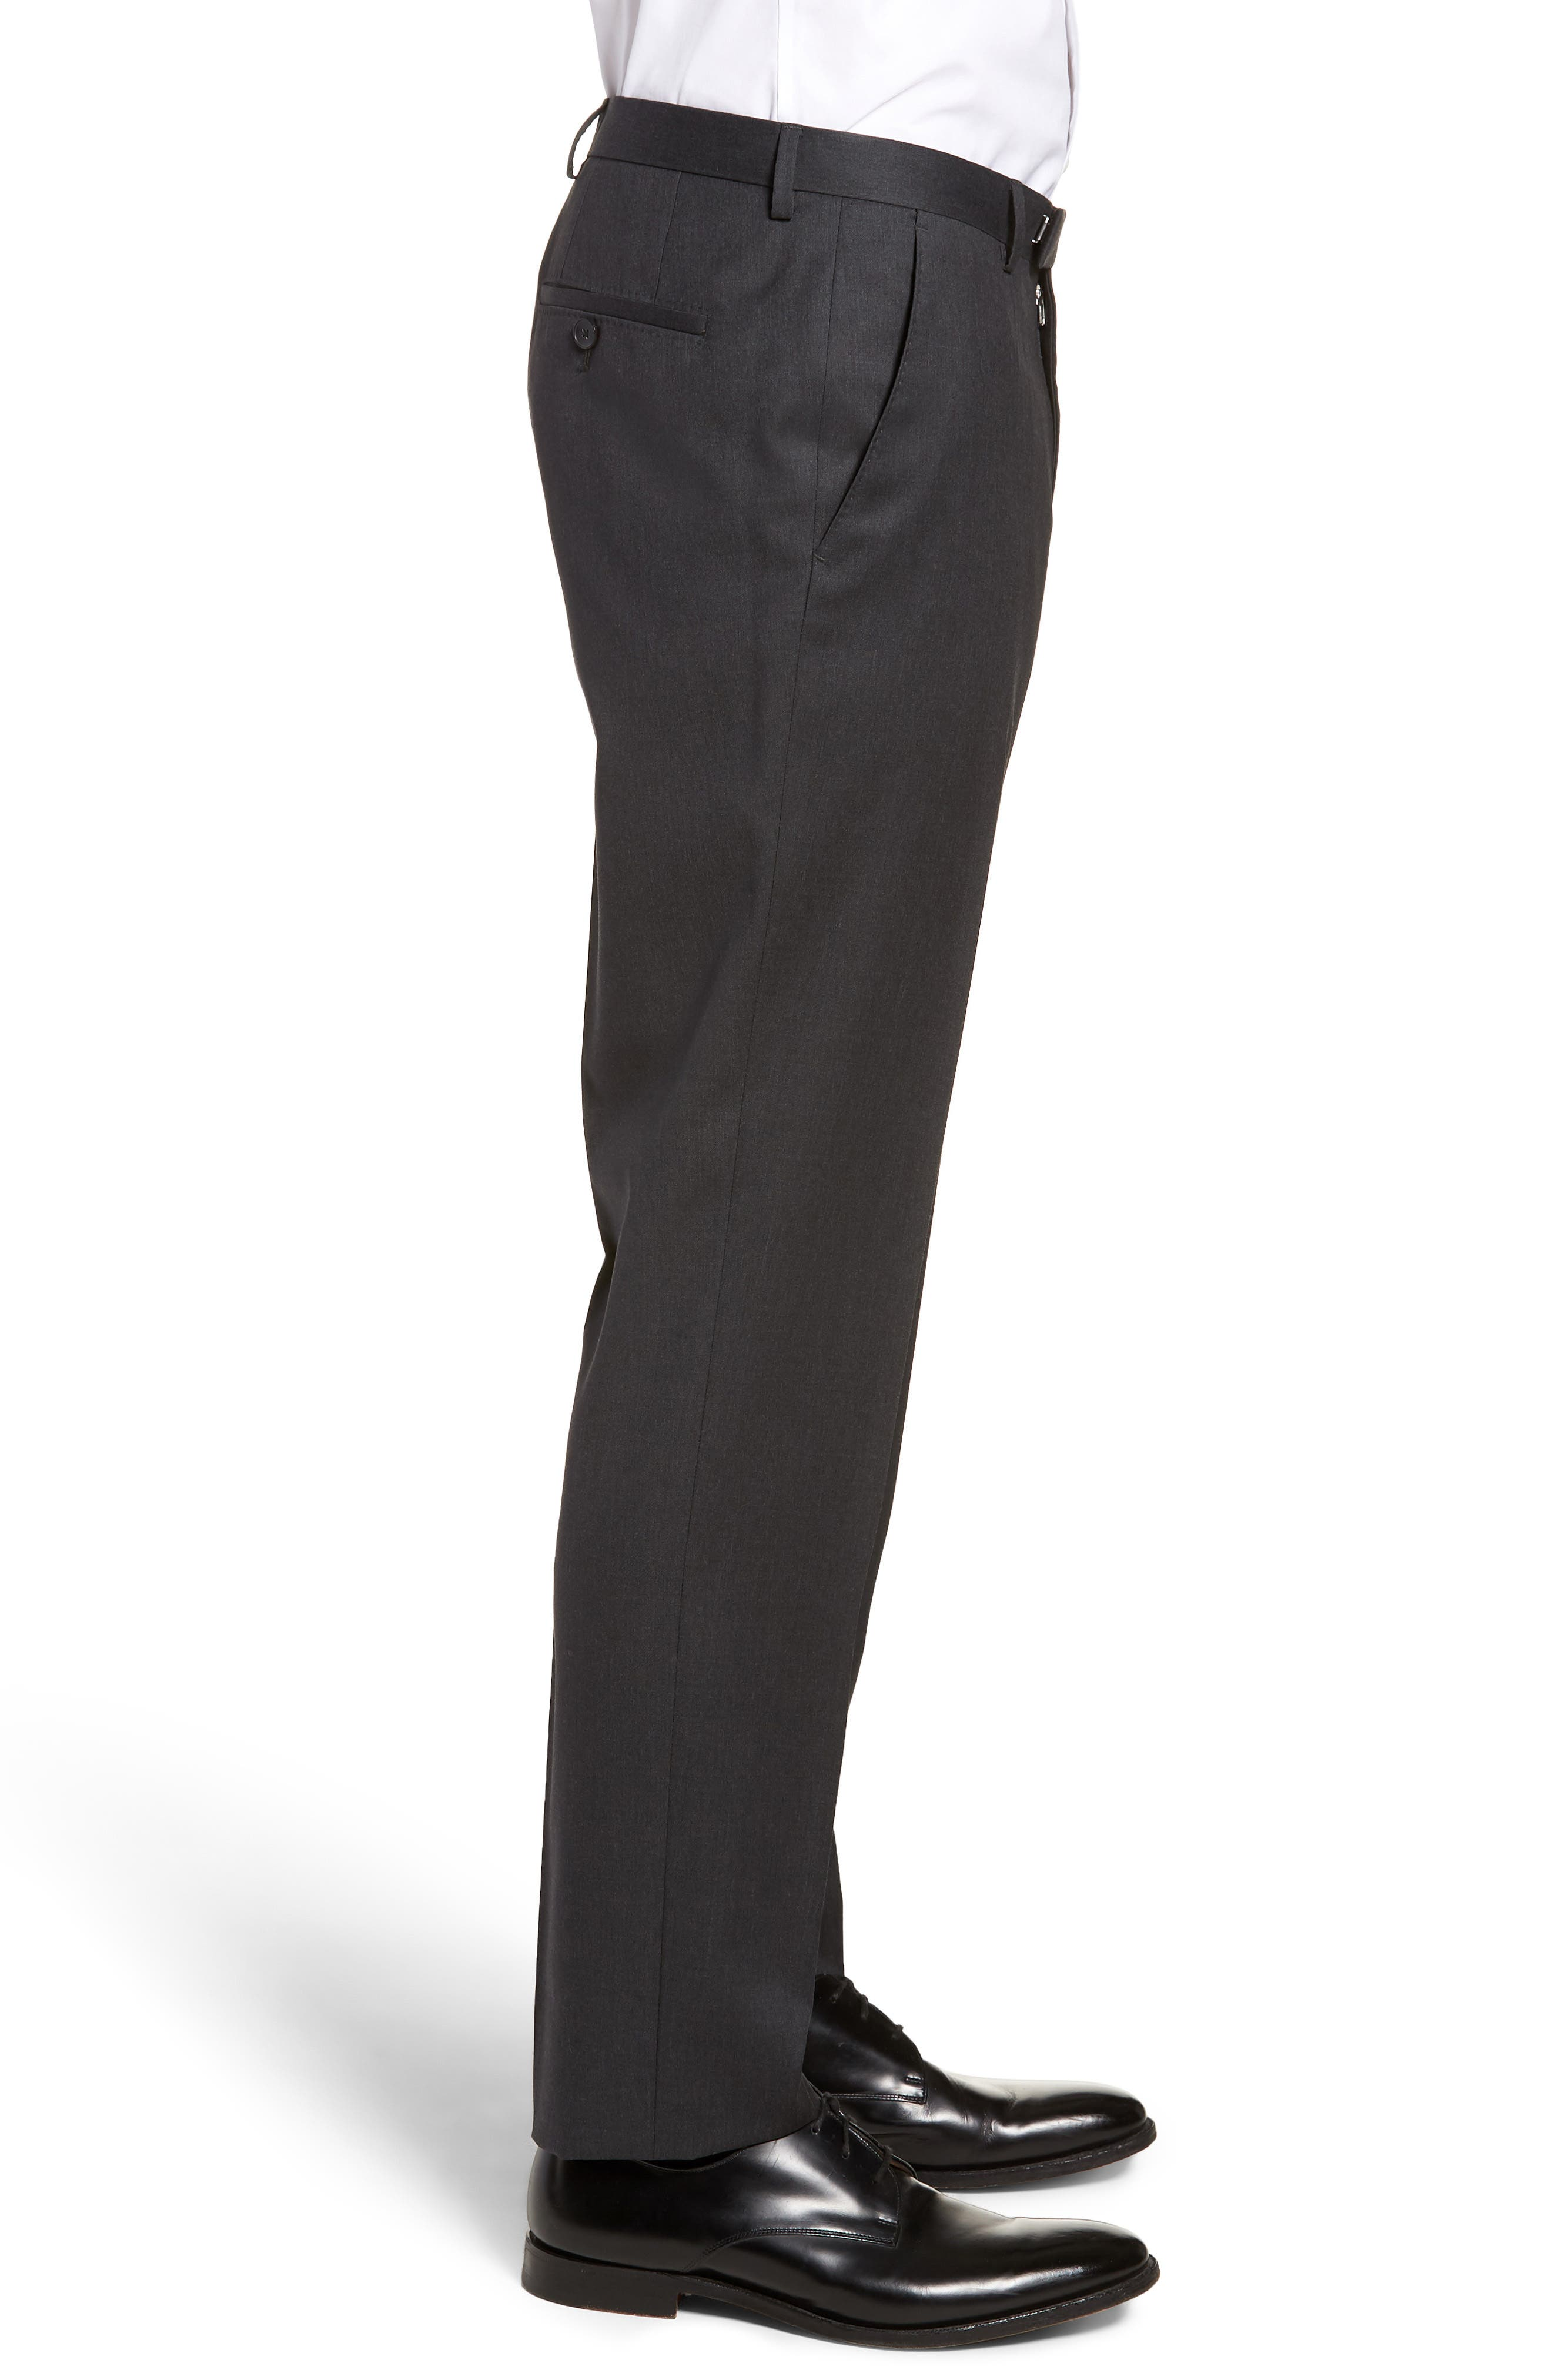 Lenon CYL Flat Front Solid Wool Trousers,                             Alternate thumbnail 3, color,                             Dark Grey